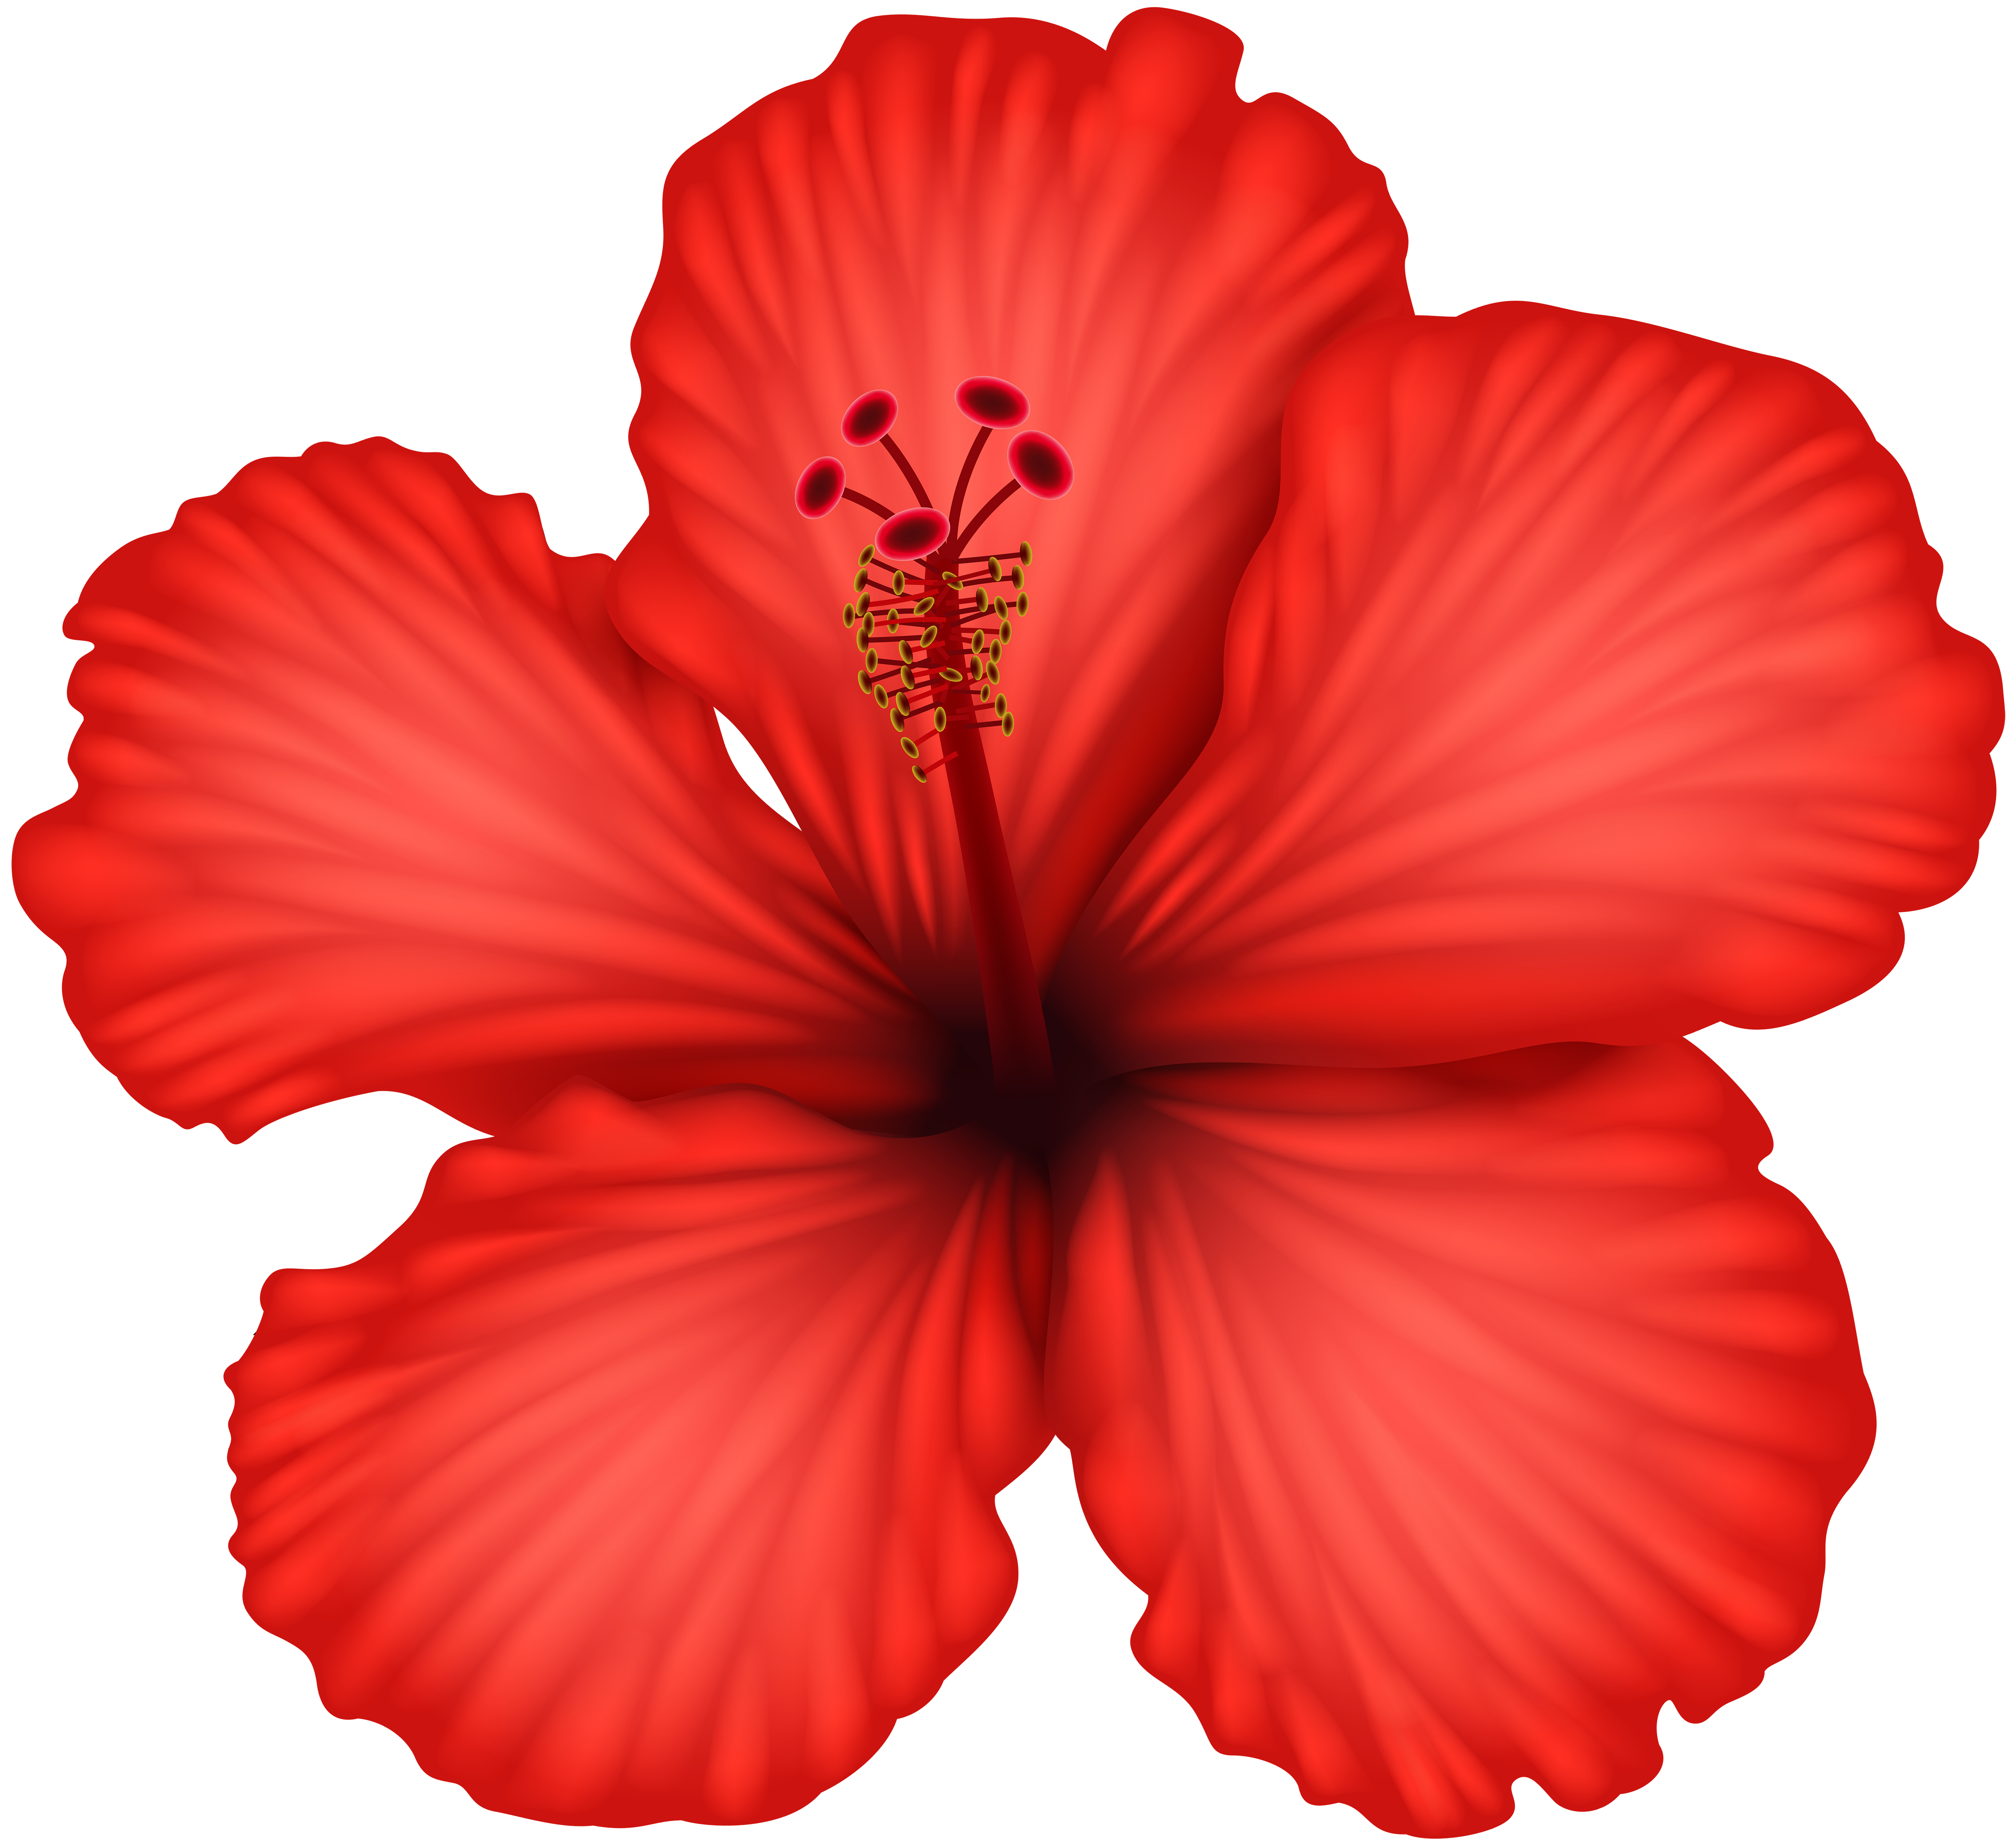 Hibiscus flower png. Red clip art gallery